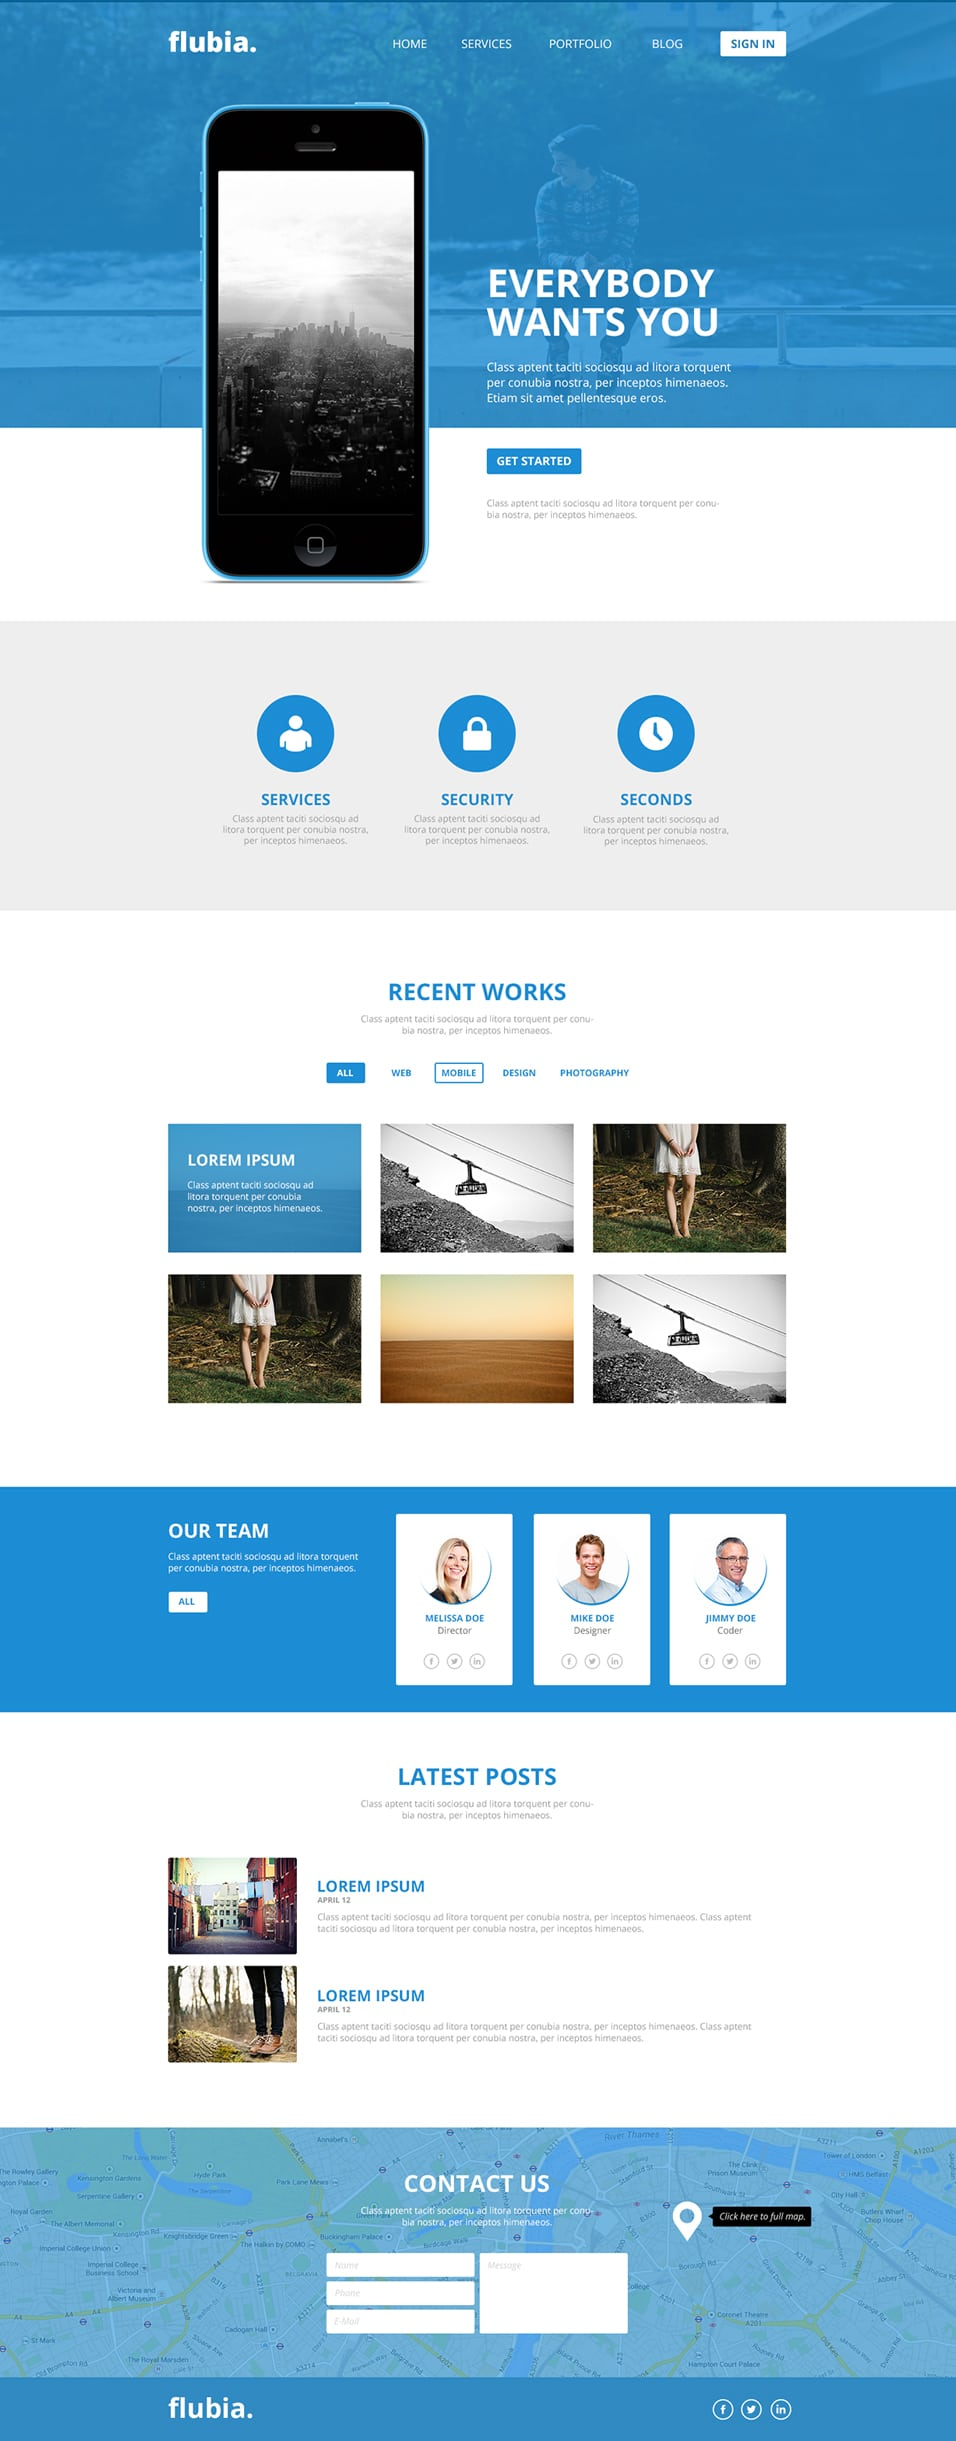 Flubia Free PSD Web Template